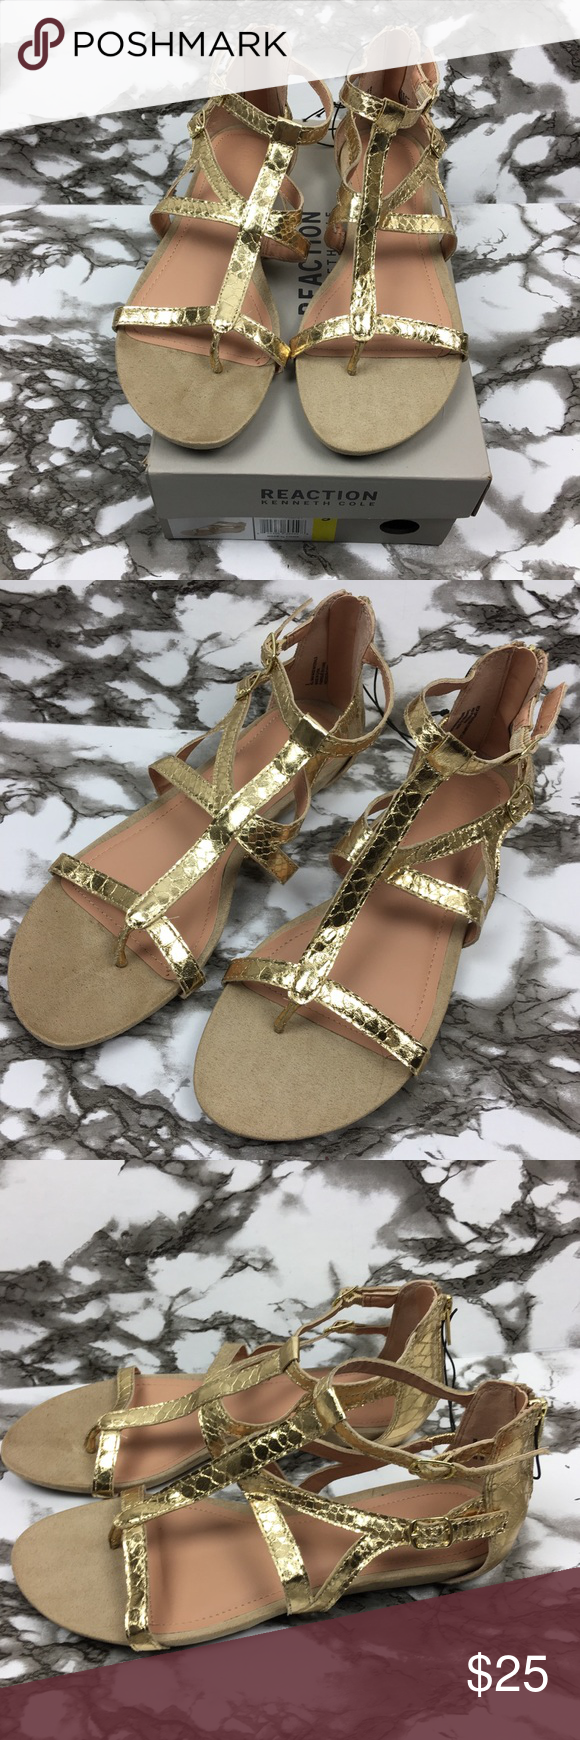 9c37c5aa8427 Kenneth Cole Reaction Gold Gladiator Sandals ~ Kenneth Cole Reaction  Gladiator Sandals • Size  9 • Color  light gold • Style  snakeskin animal  pattern ...